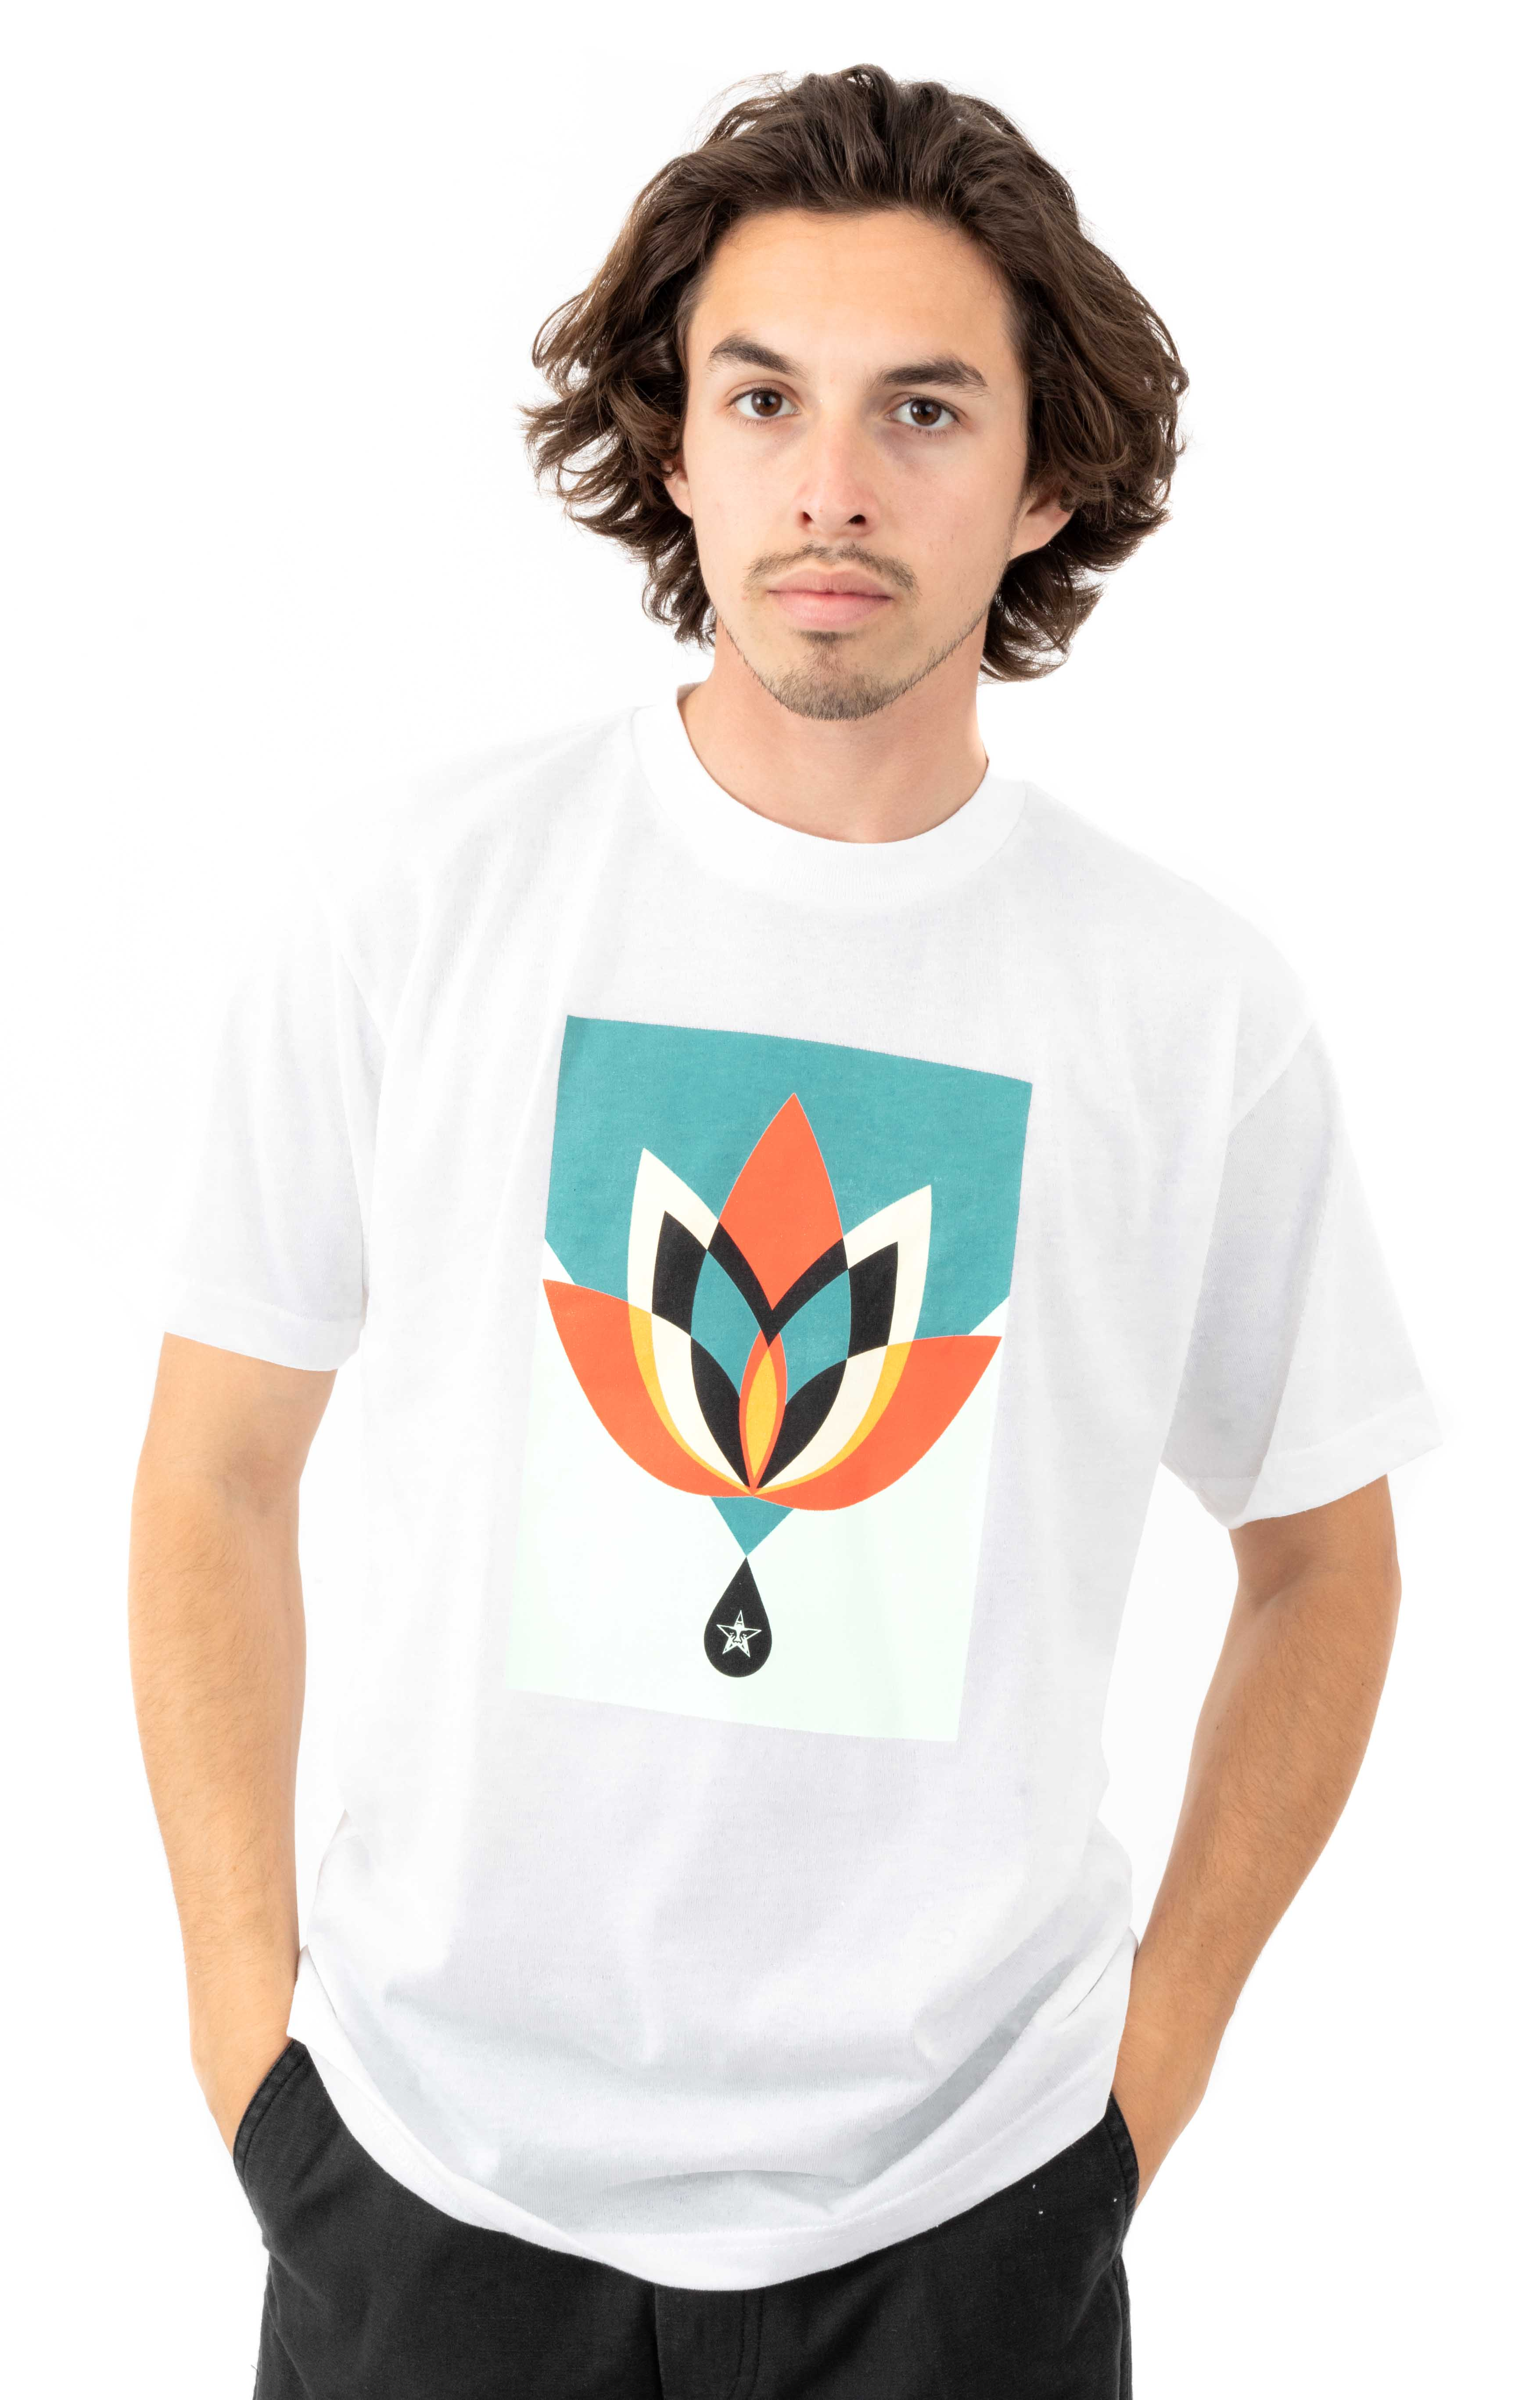 Obey Geometric Flower T-Shirt - White